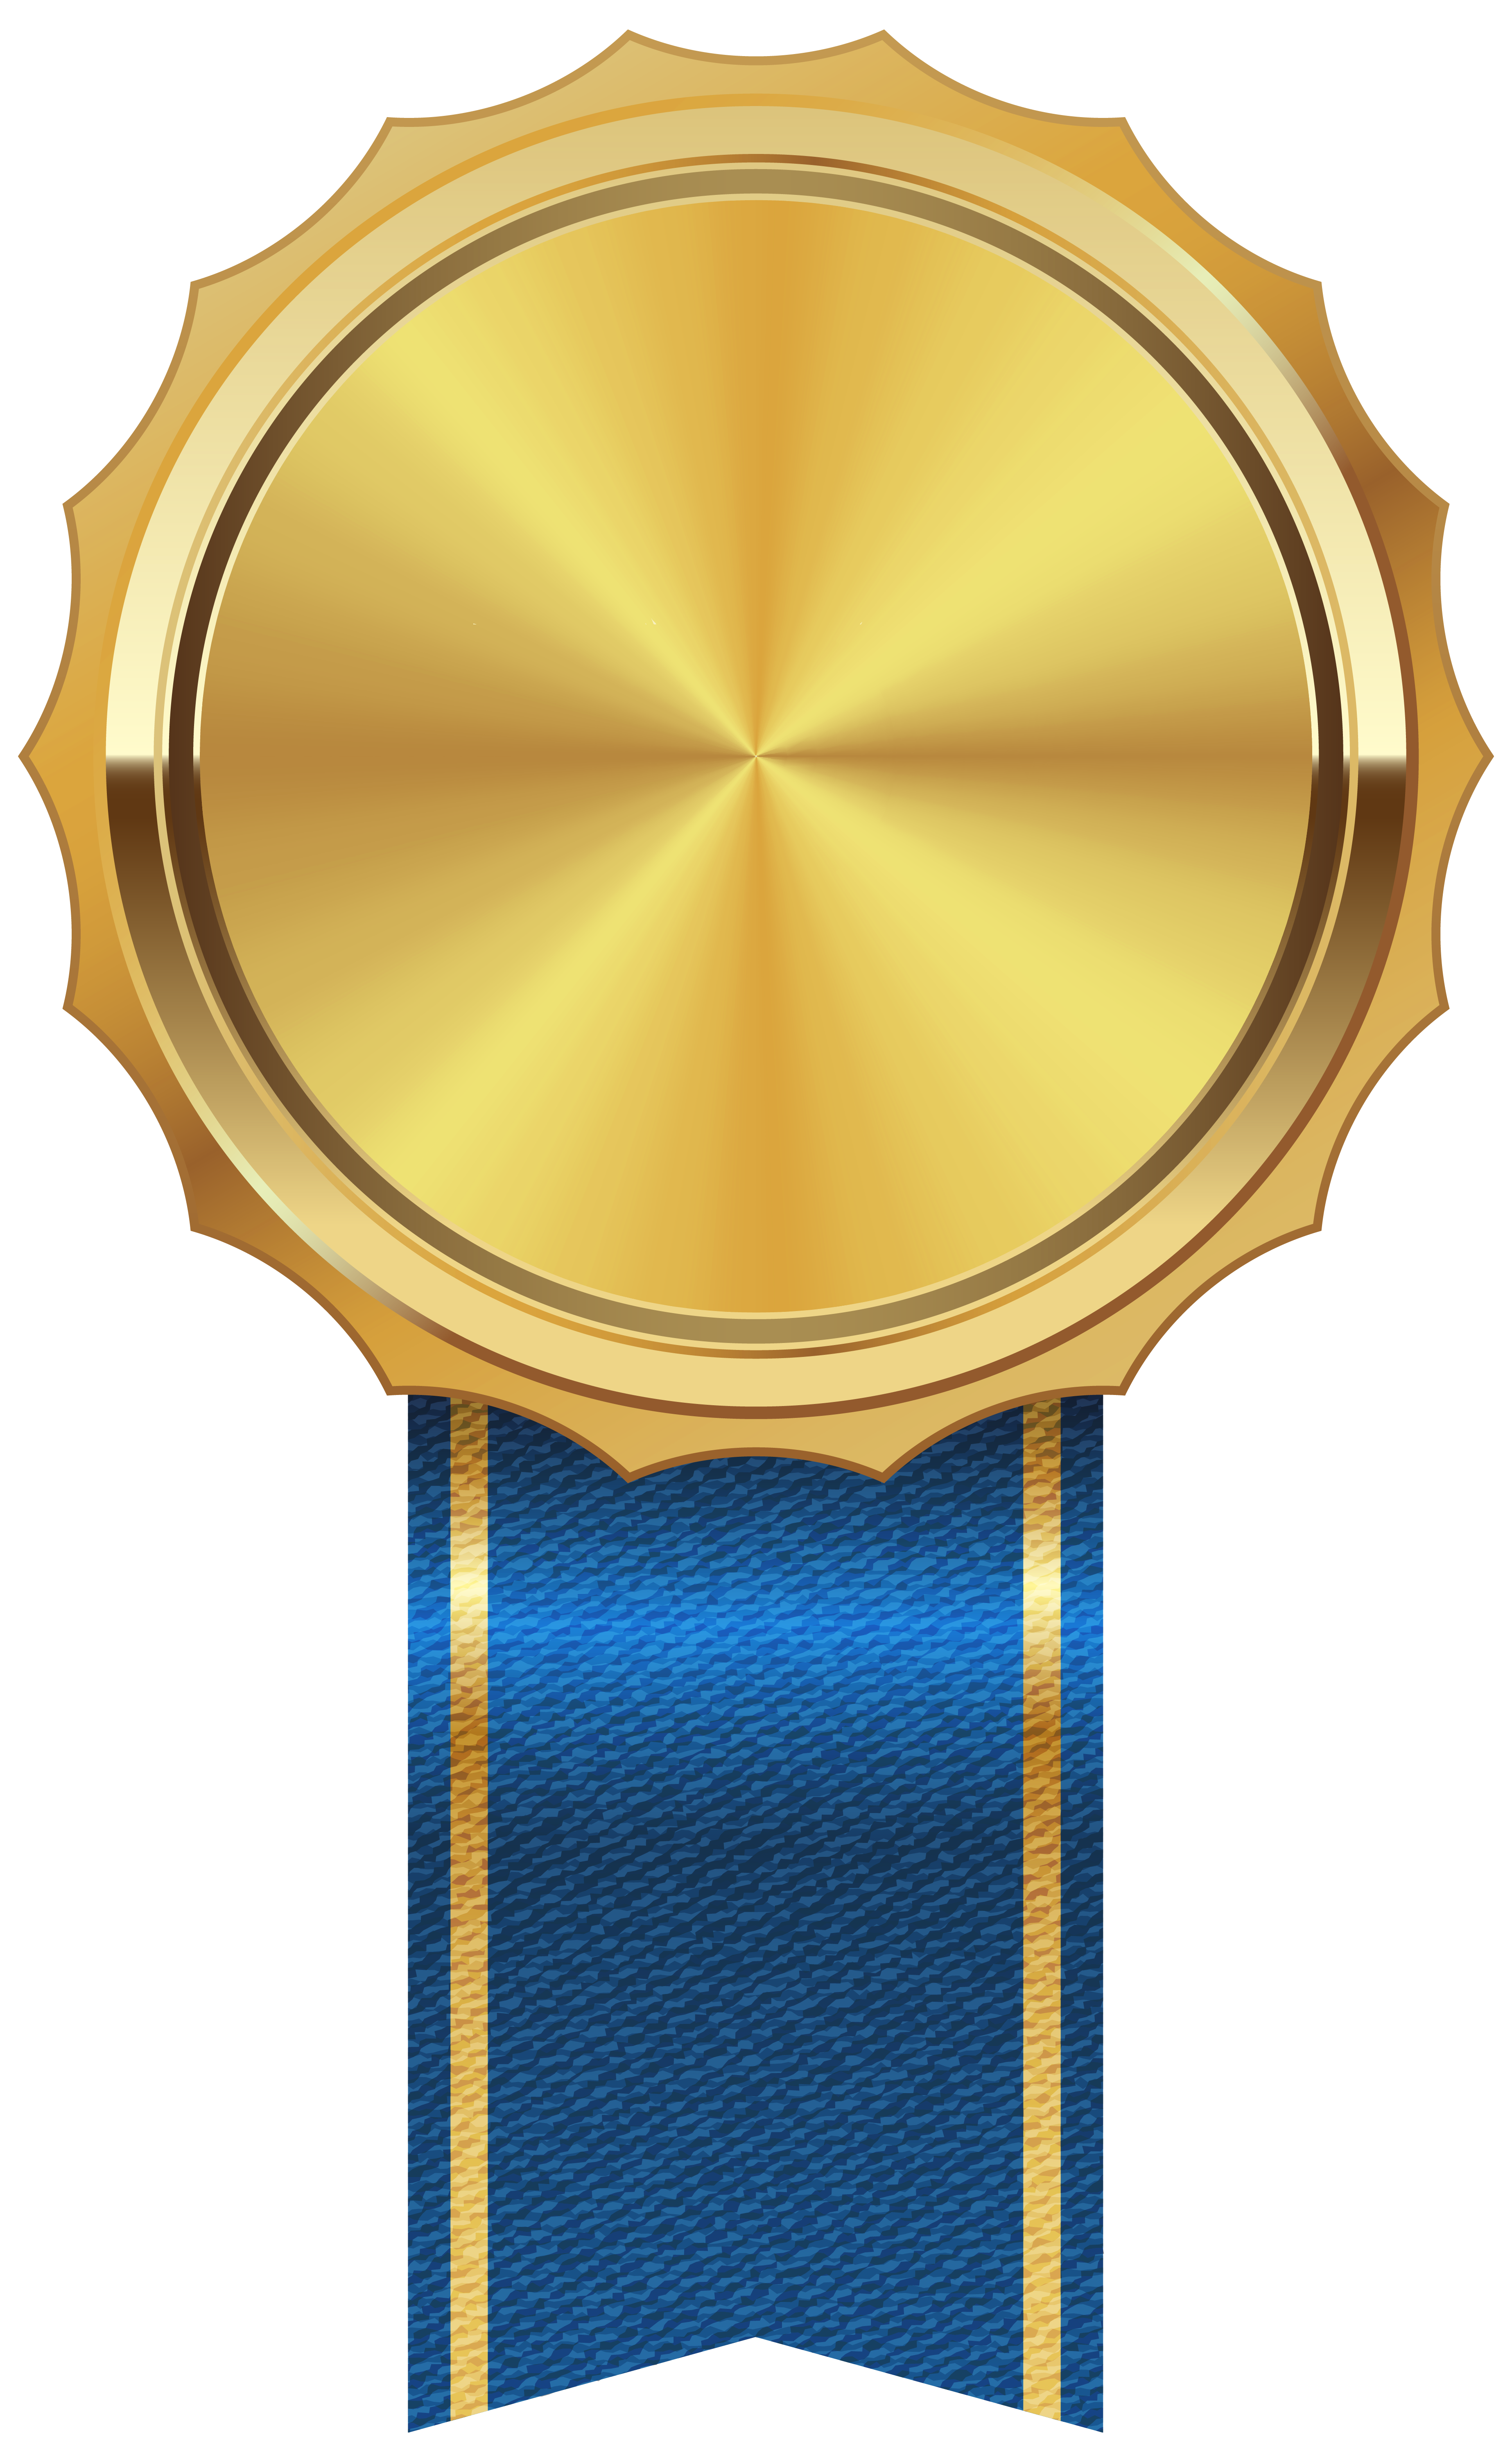 Gold Medal With Blue Ribbon Png Clipart Image Gallery Yopriceville High Quality Images And Transpar Ribbon Png Gold Medal Wallpaper Gold Design Background